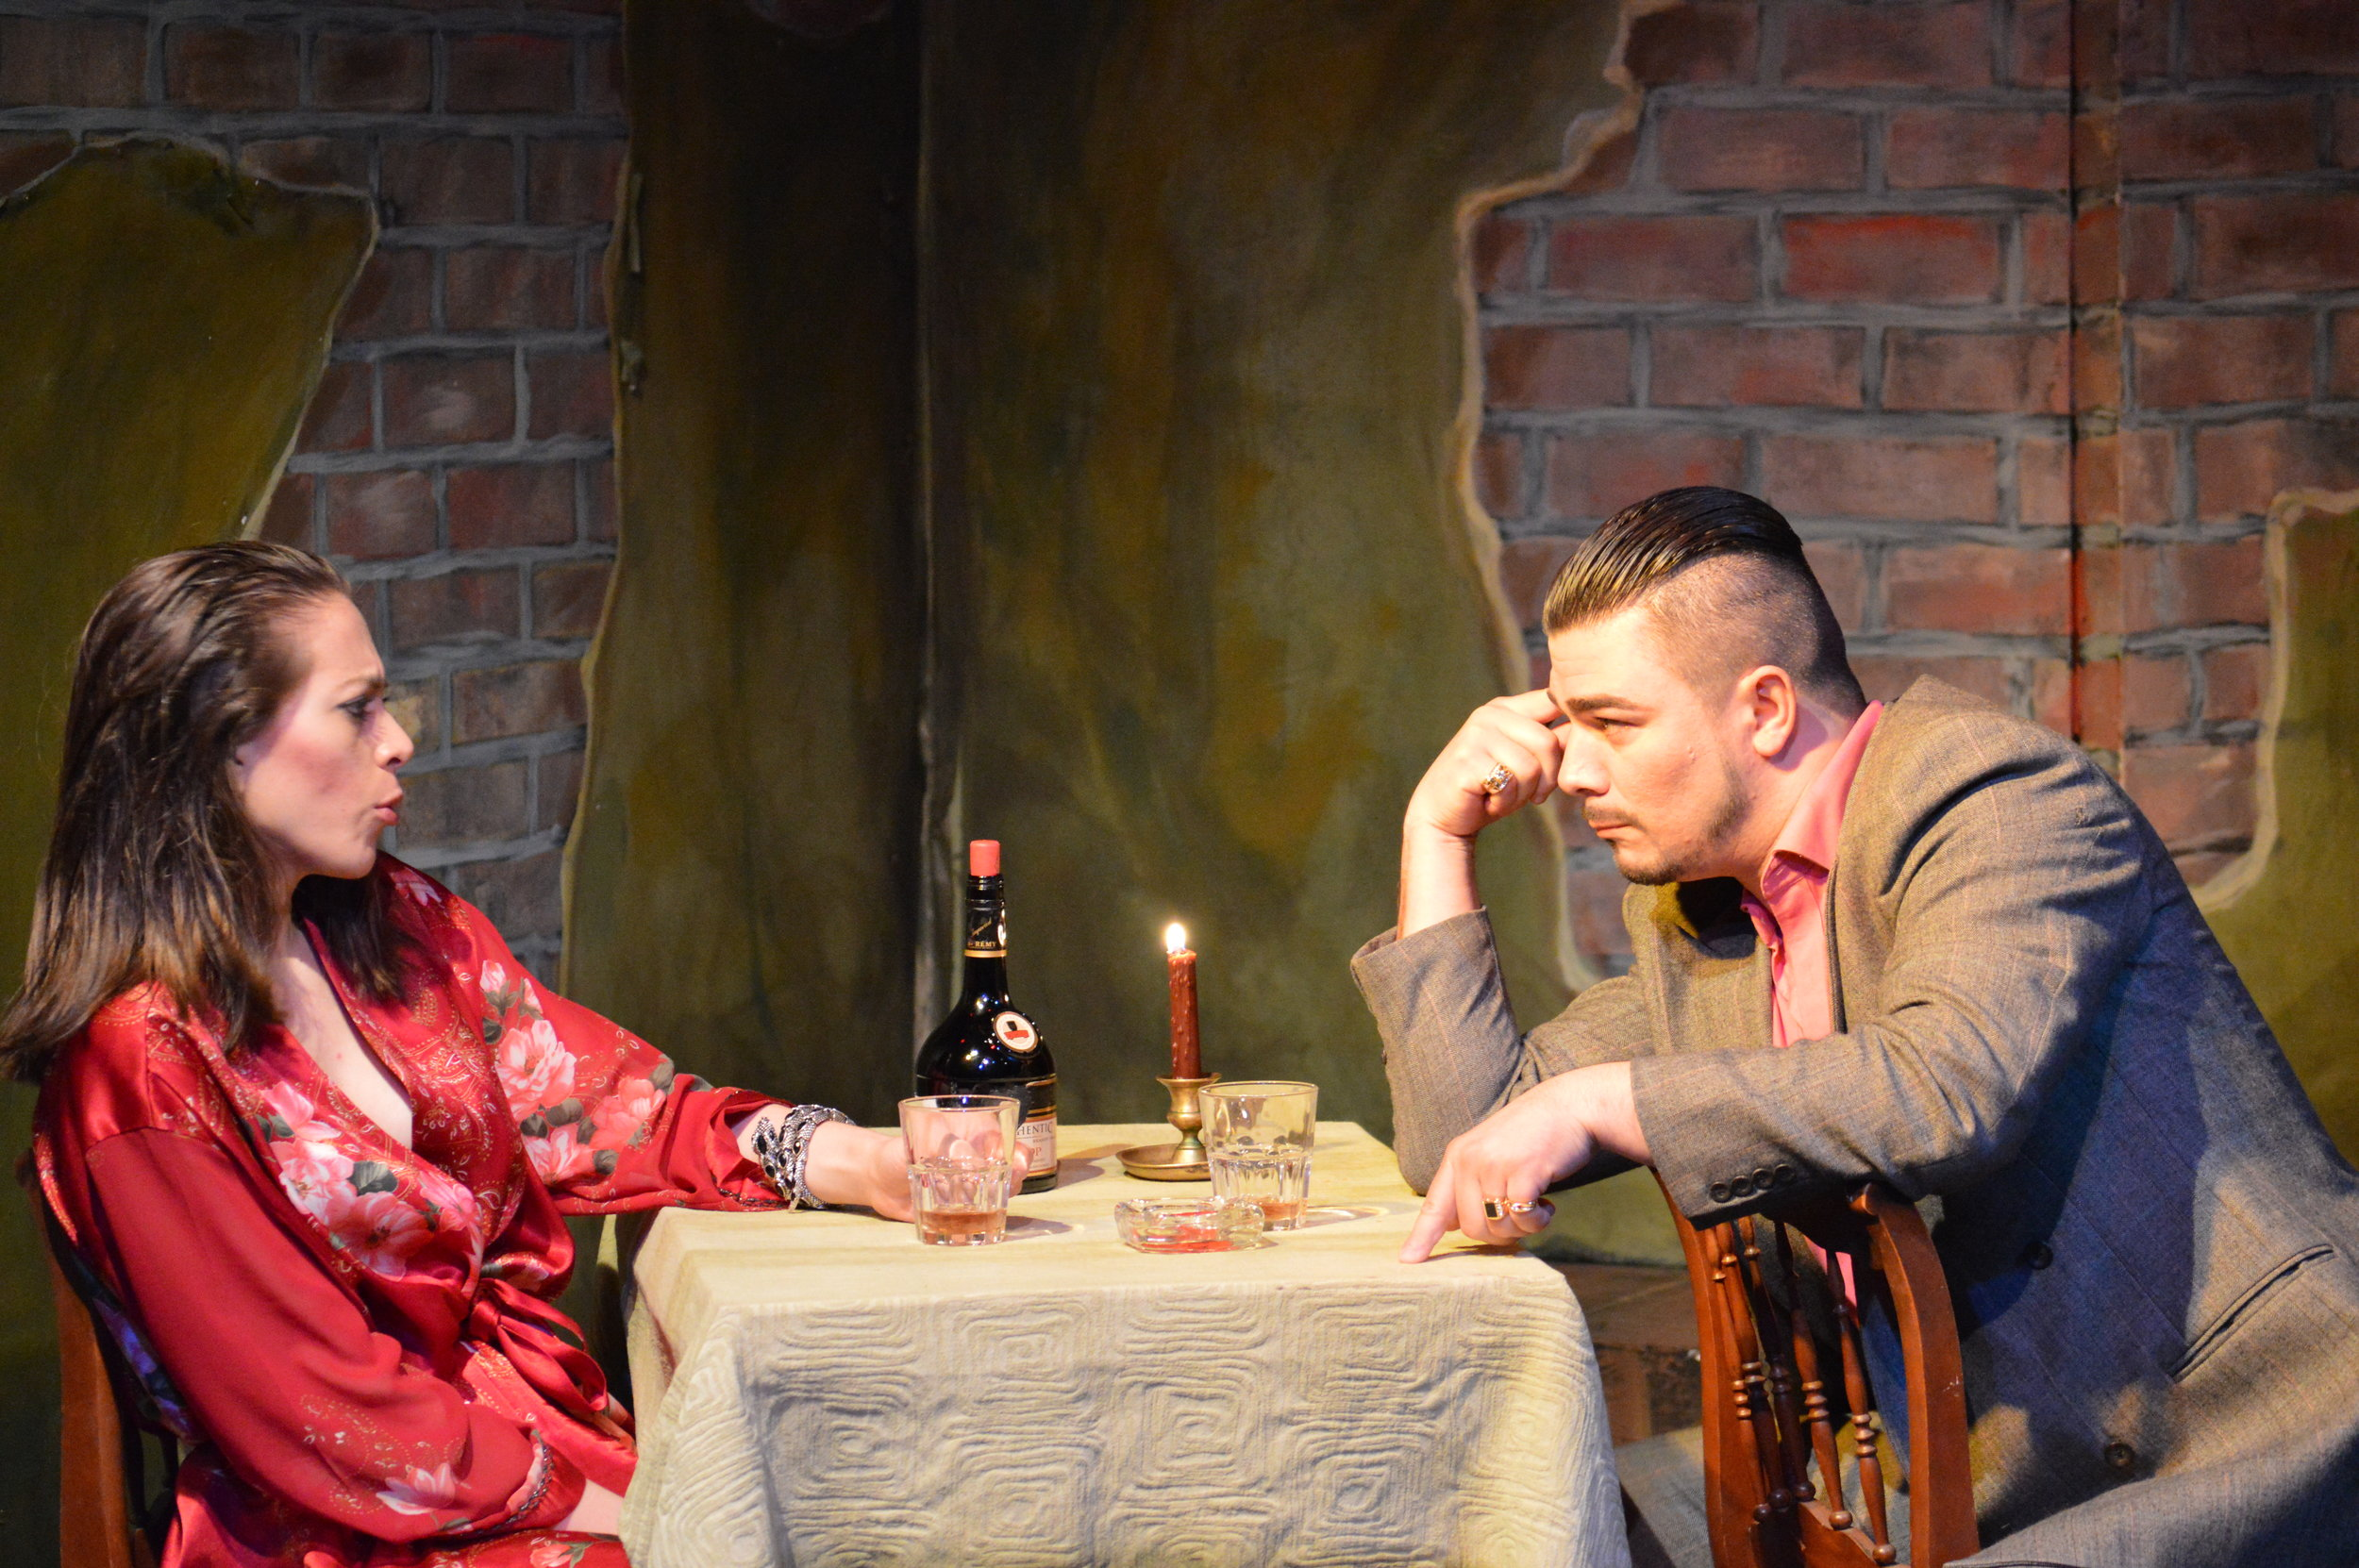 As Lizzie MacKay, opposite Sándor Menéndez as Fred, in Aguijón's 2014 production of  La Fulana Respetuosa: Concierto Teatral , a Spanish-language adaption of Sartre's  The Respectful Prostitute  featuring songs performed by the inimitable Alba Guerra.